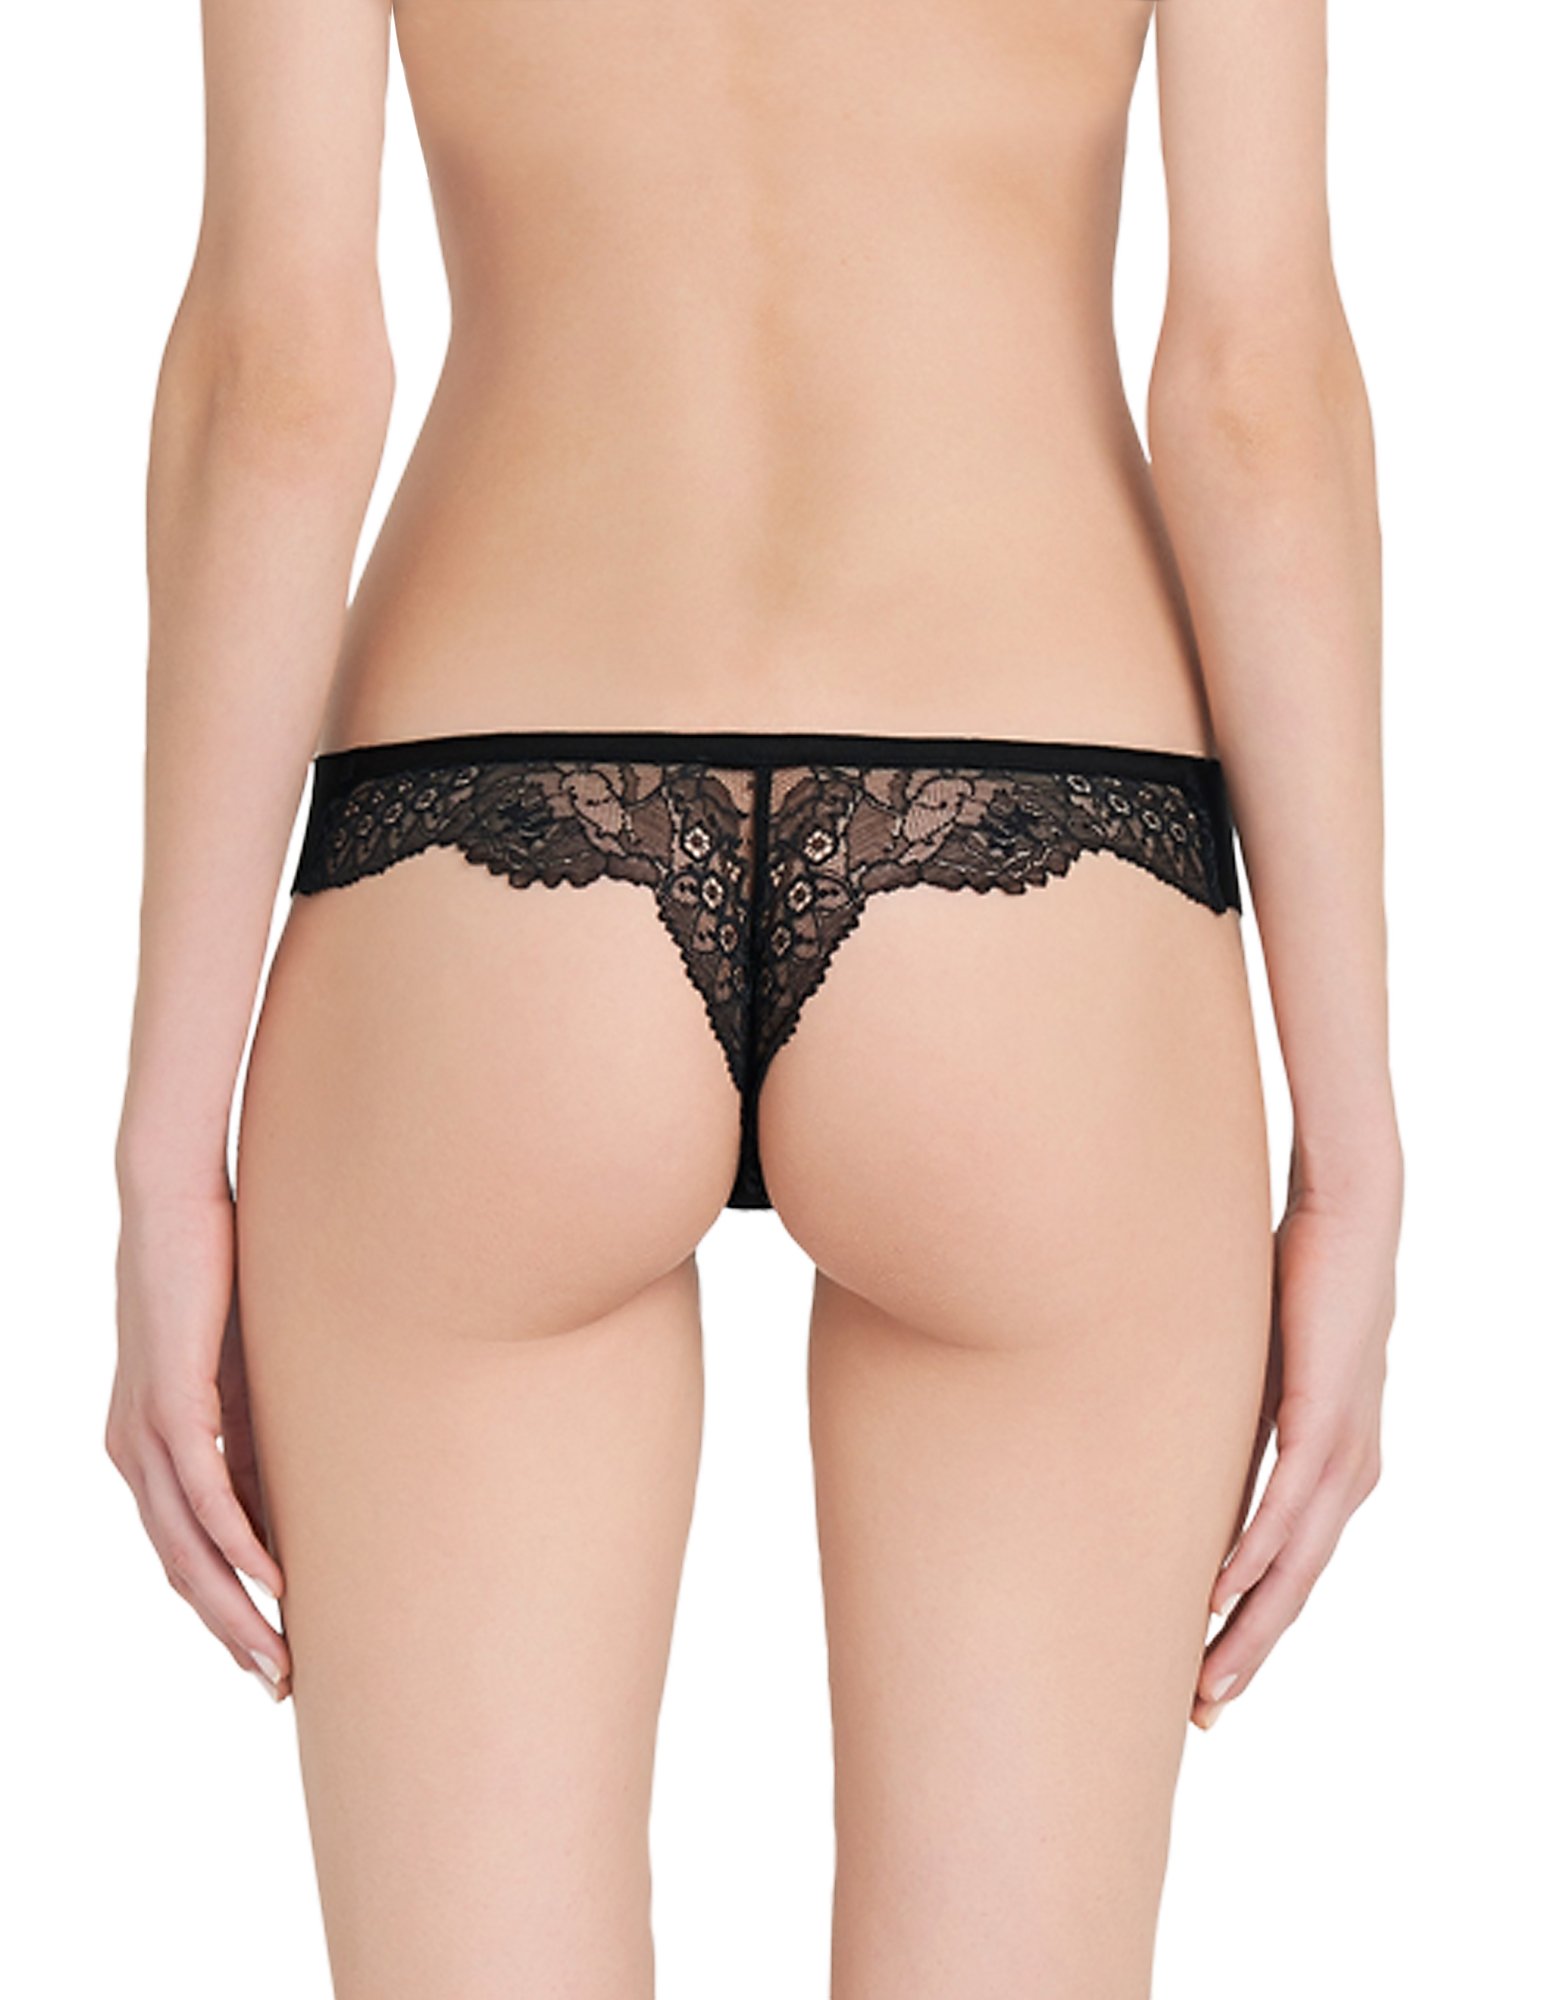 Lace Frills Black Leavers Lace and Neoprene Low-rise Thong от Forzieri.com INT